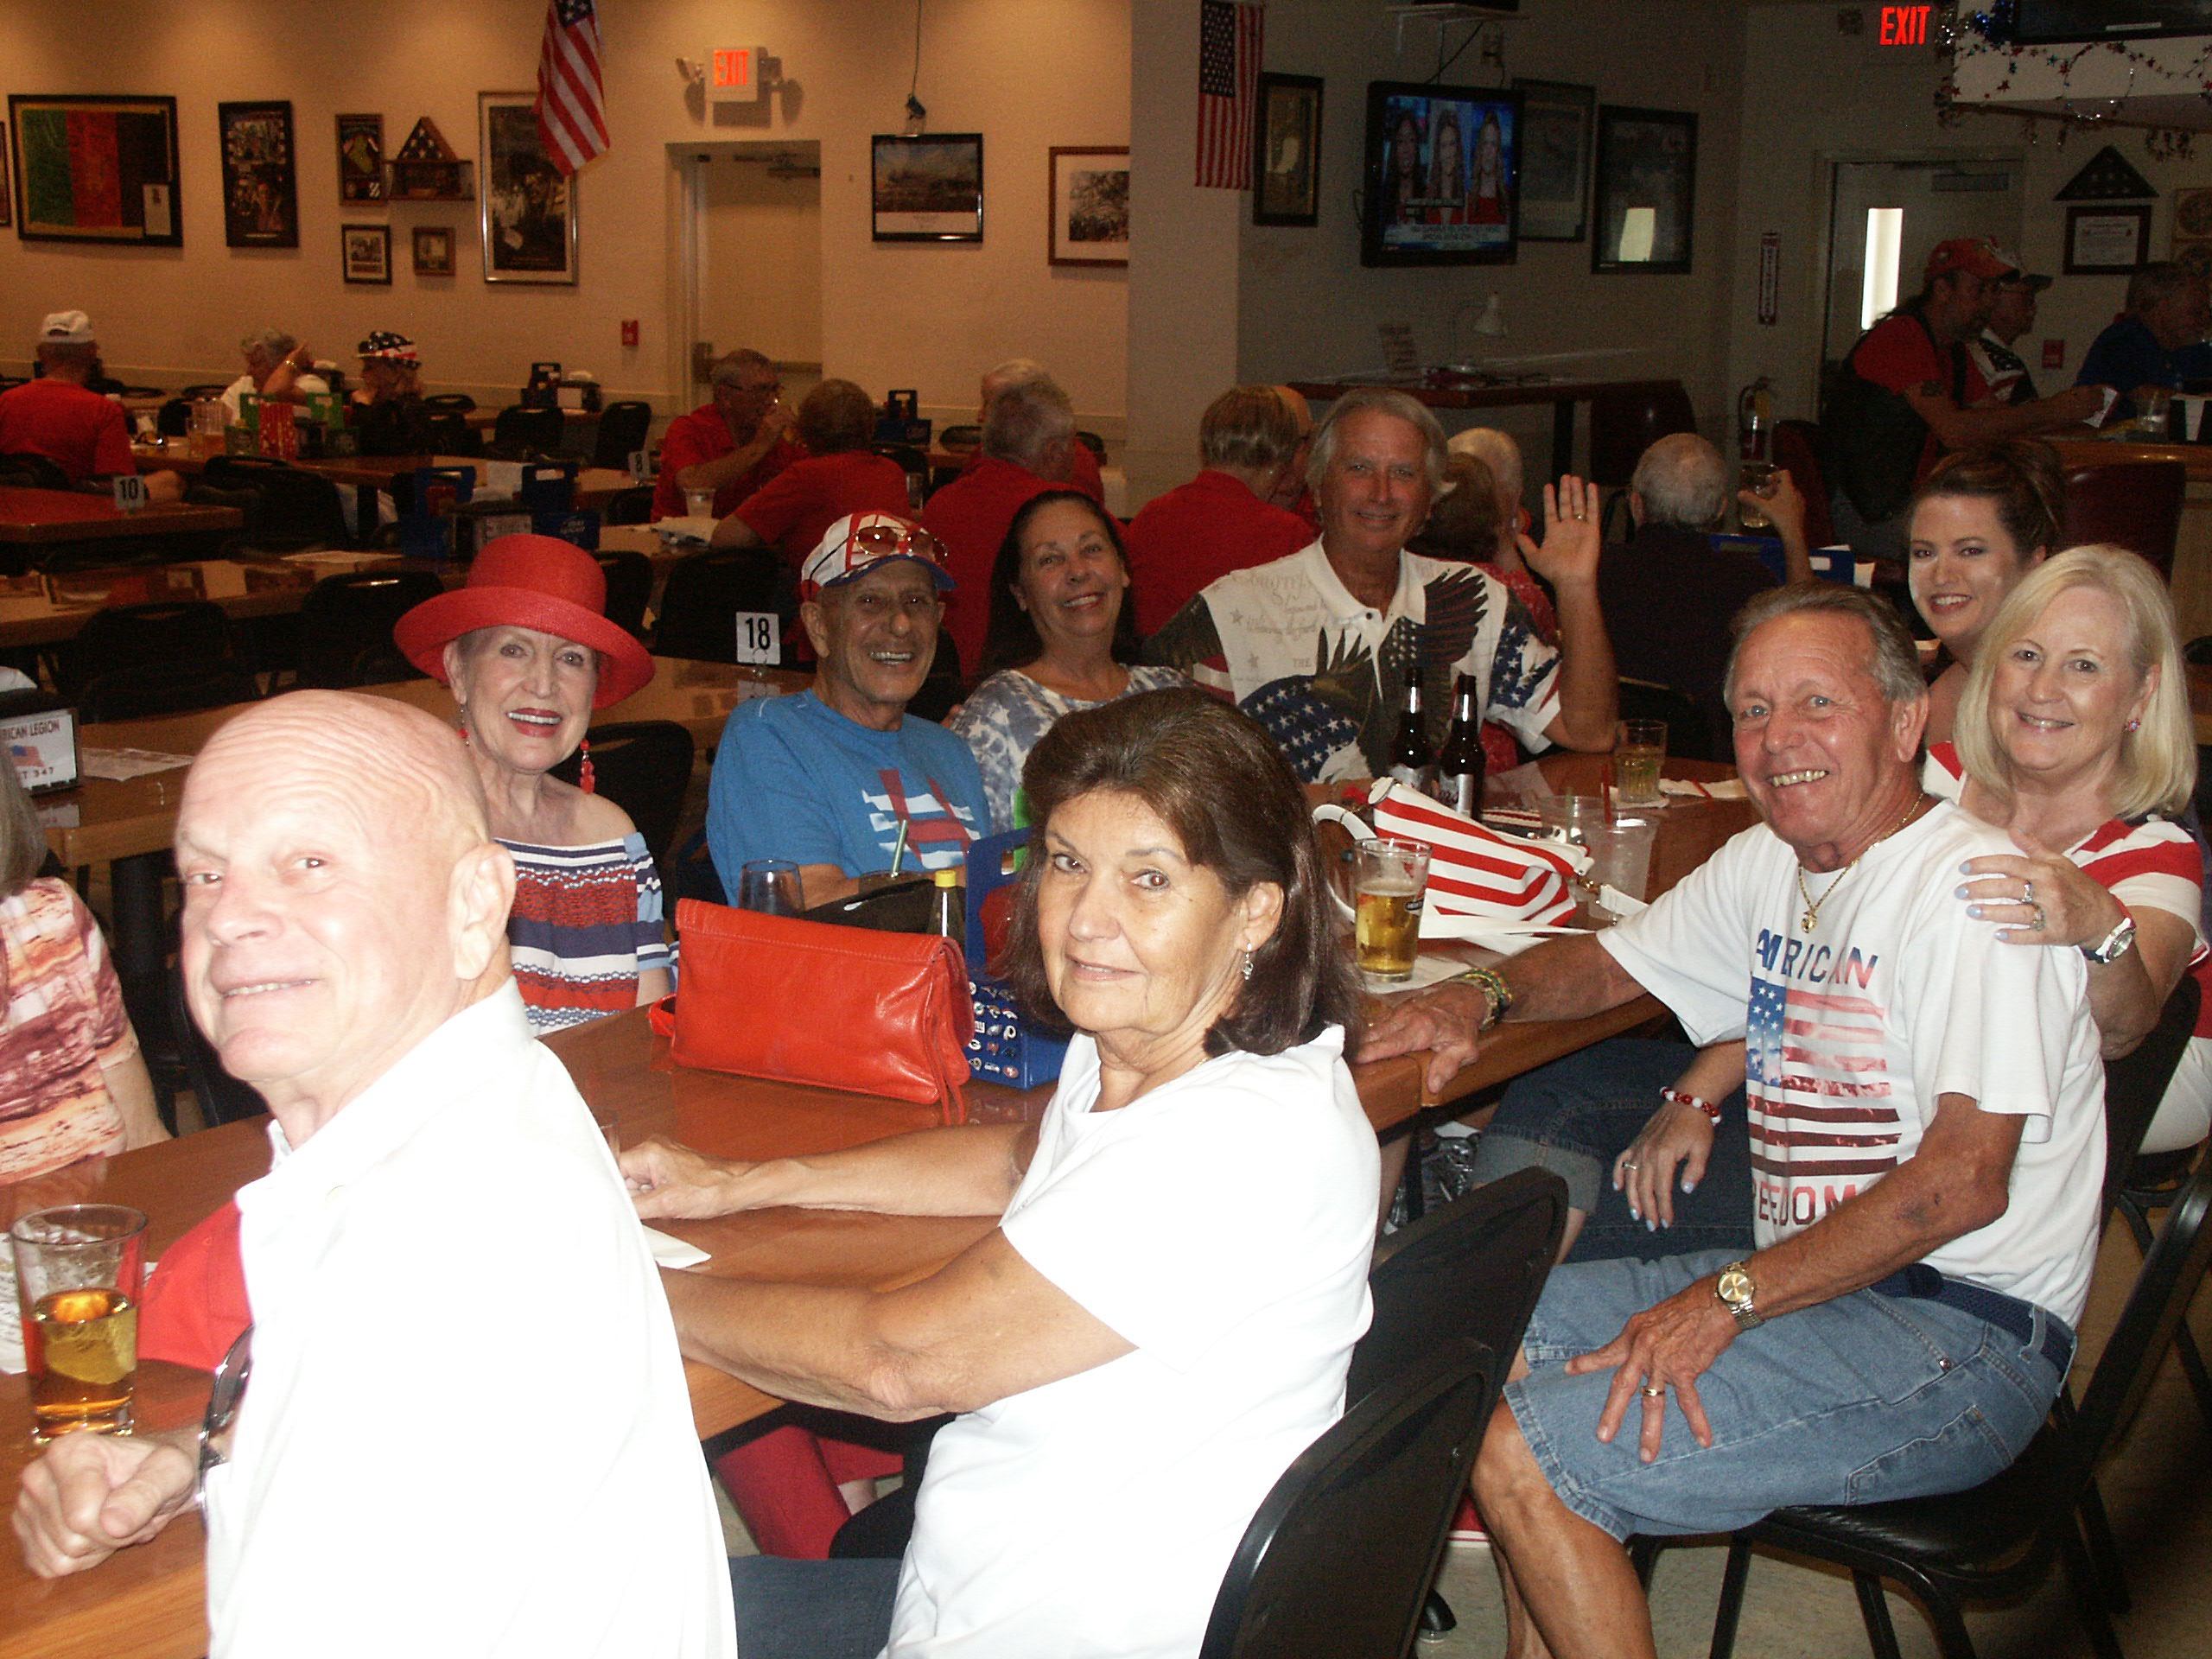 http://www.florida-legion.com/july4.5.JPG